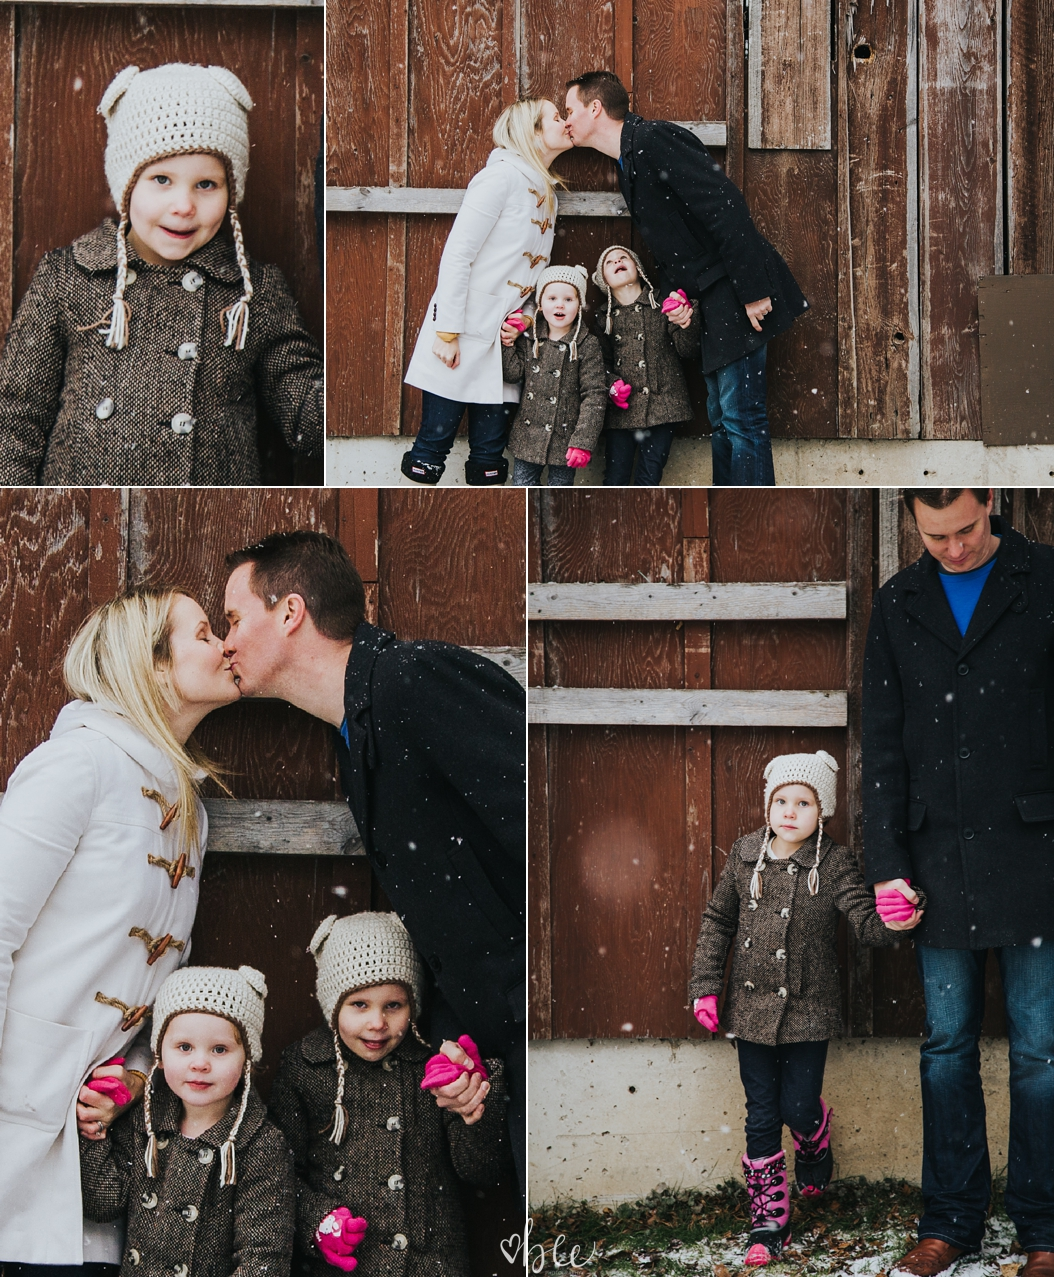 family in front of the barn, mom and dad kissing, family in winter